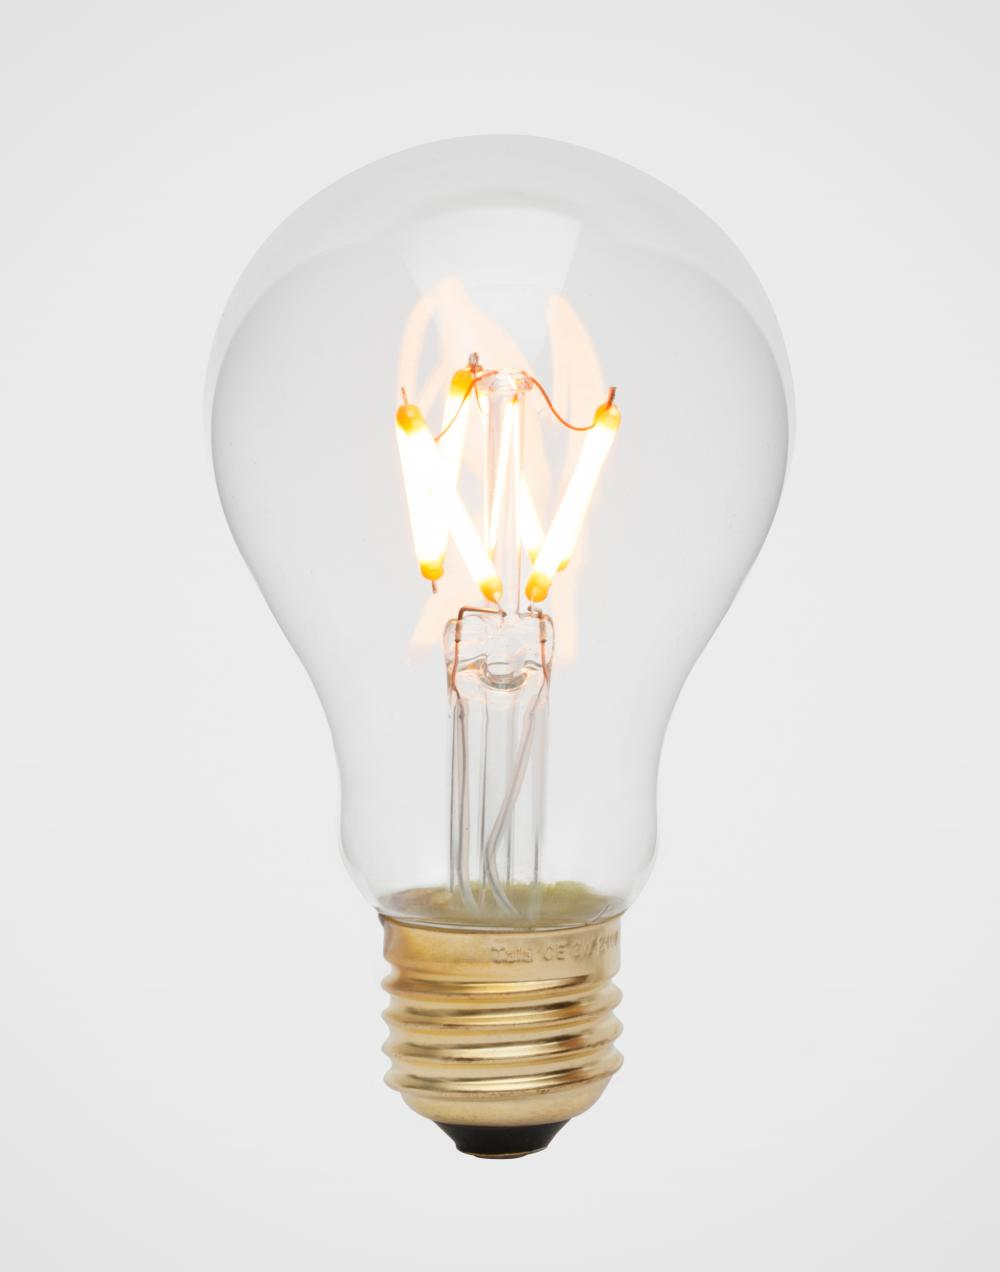 Tala LED Crown light bulb